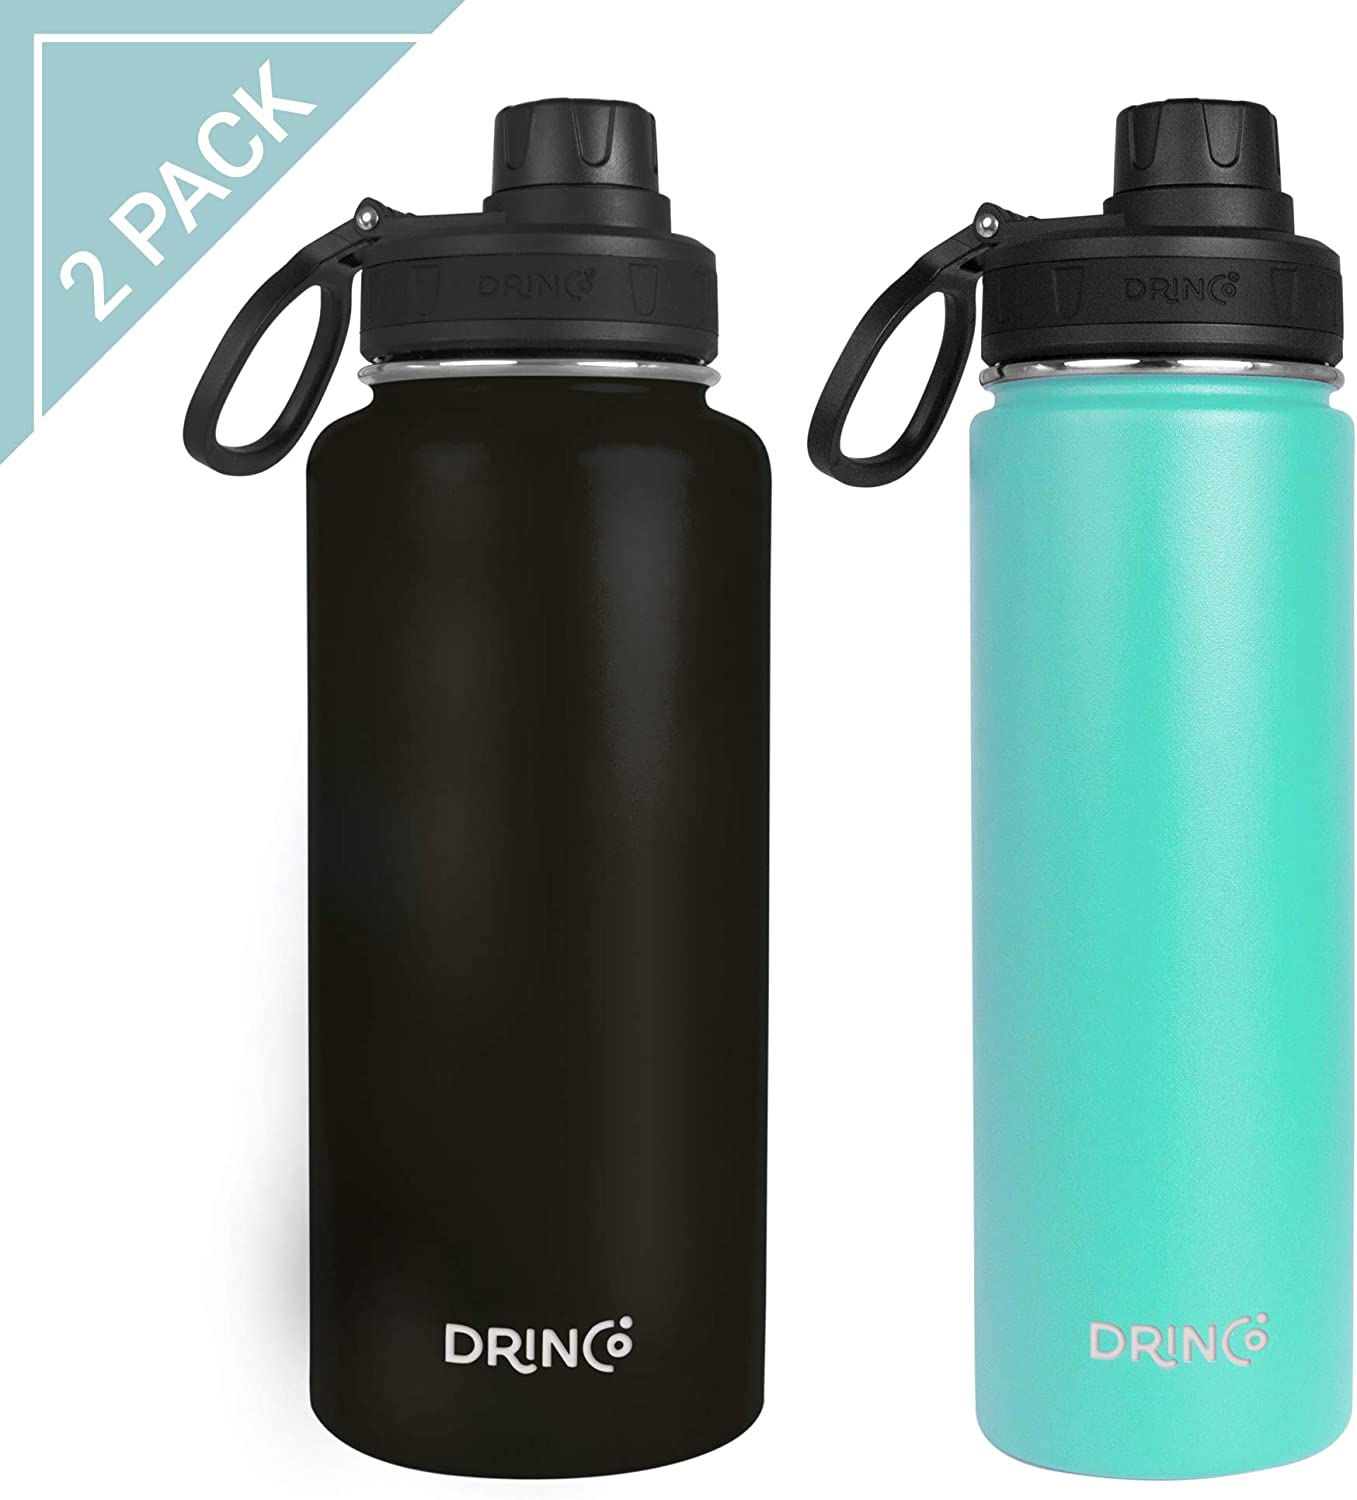 Drinco - Stainless Steel Water Bottle Double Wall Vacuum Insulated | 2 pack Perfect for Traveling Camping Hiking (Black/Teal, Combo 32oz & 20oz)